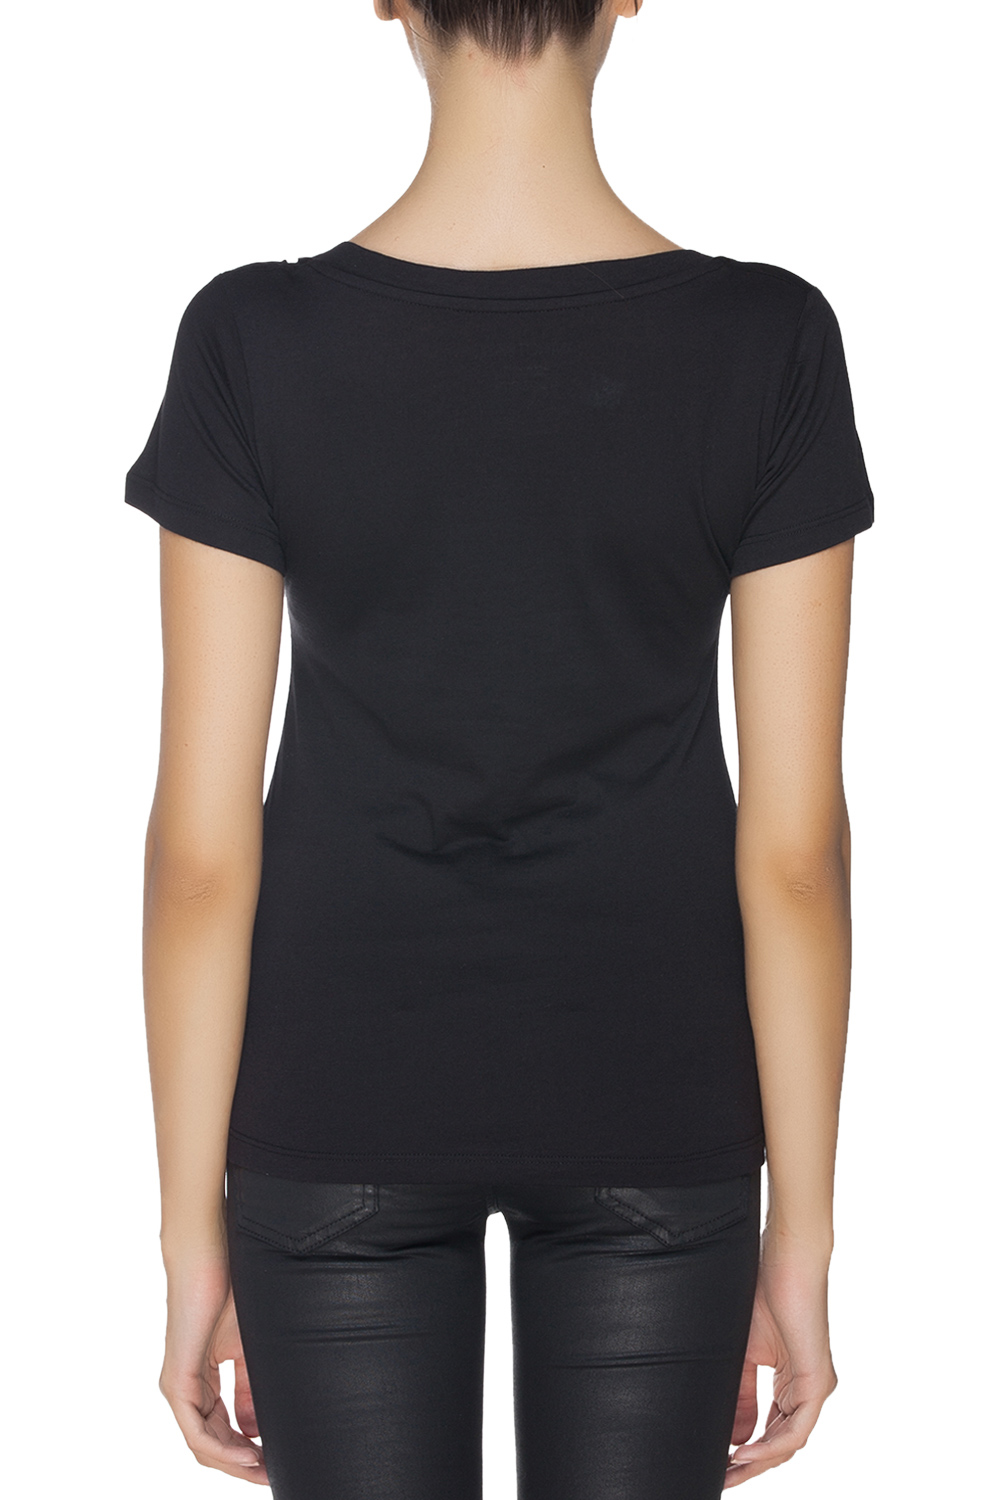 Iamnotbasic black deep v neck t shirt black 365ist V neck black t shirt